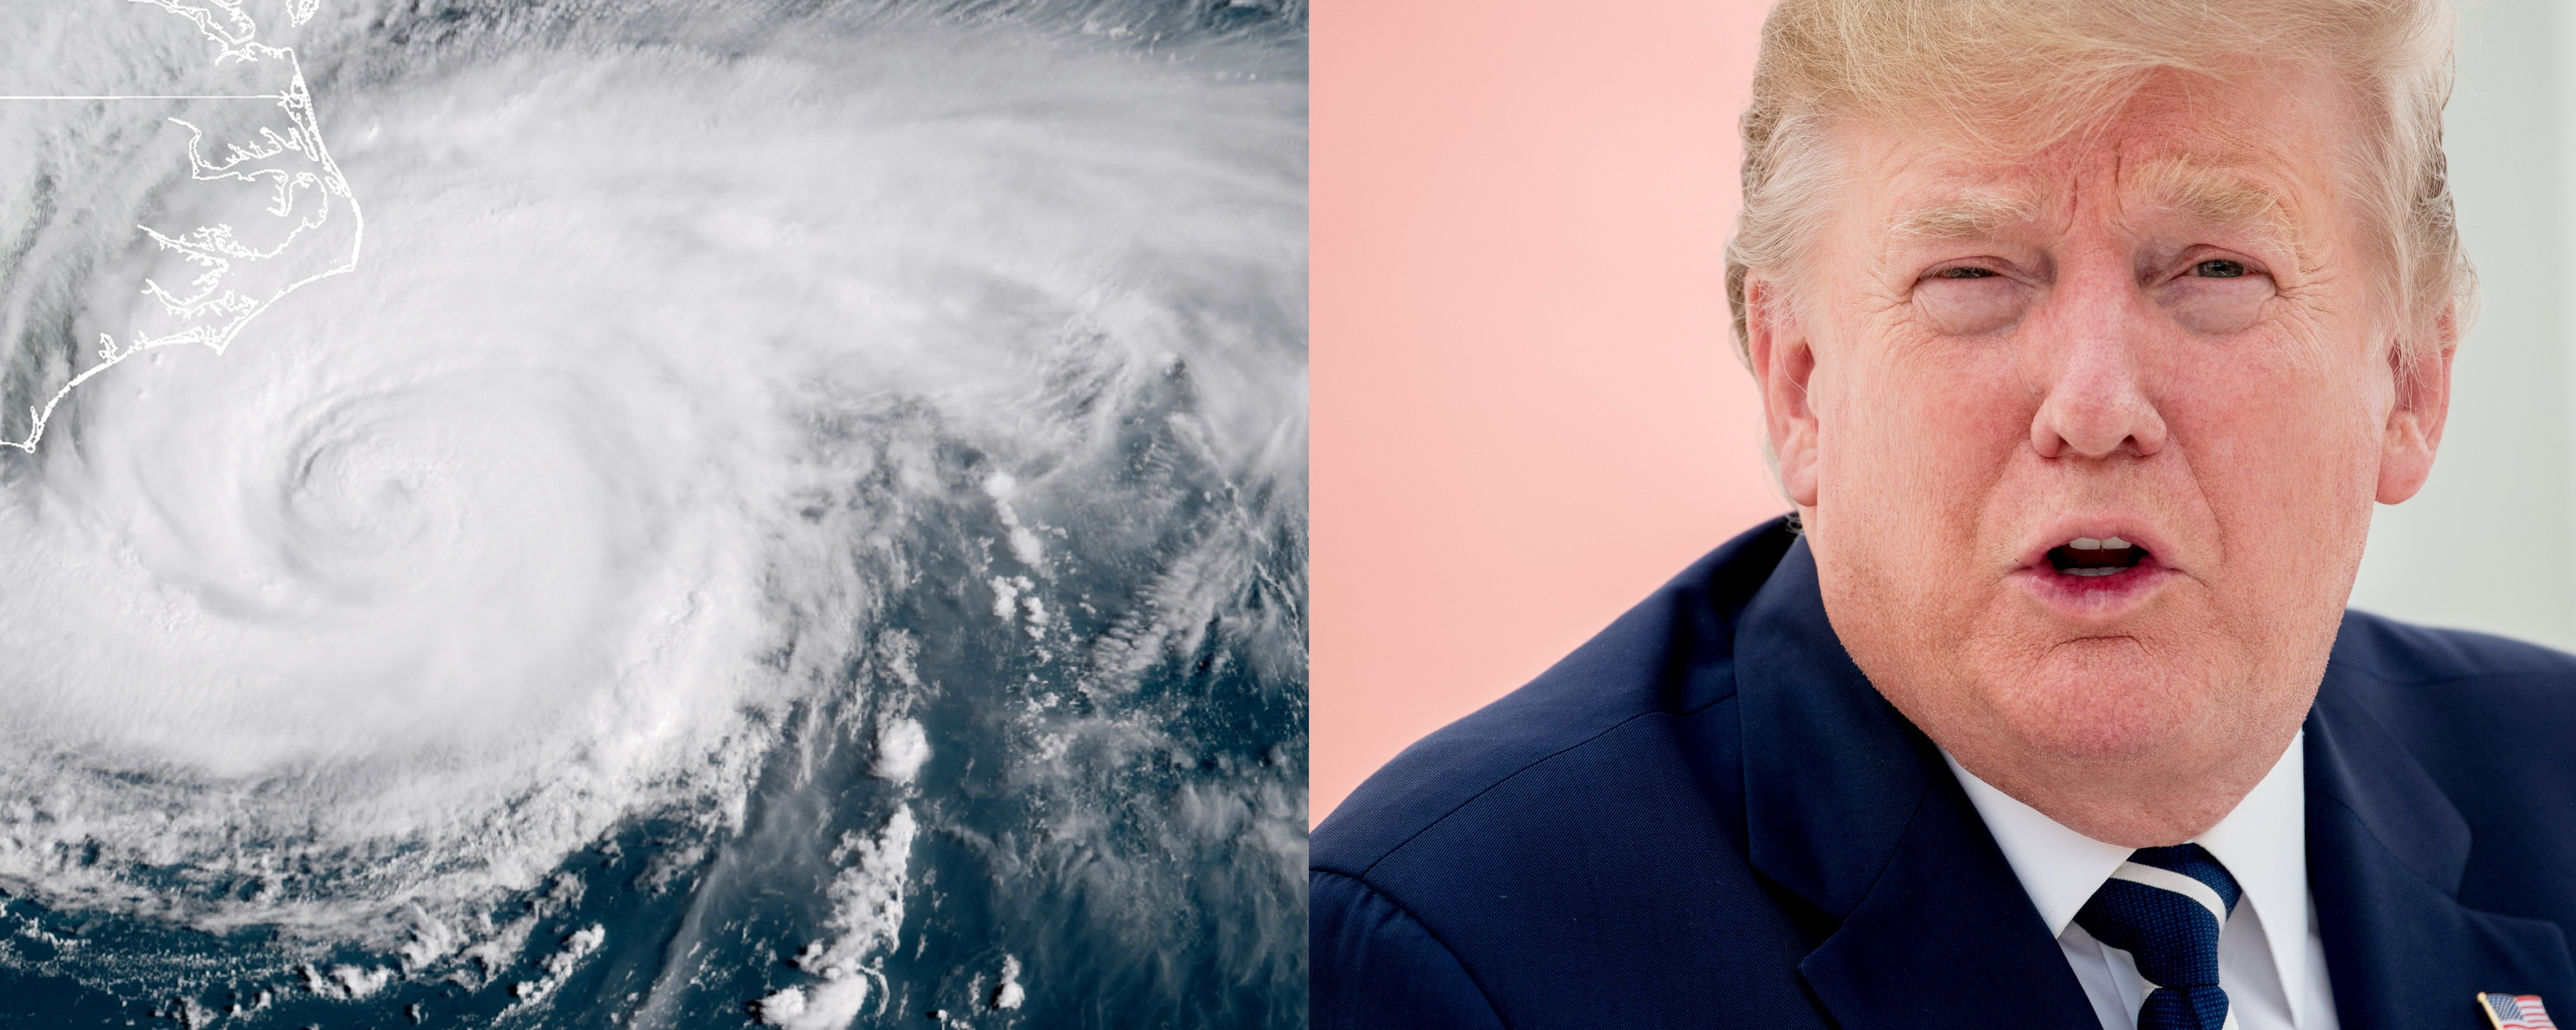 So Here S Why You Probably Don T Want To Nuke A Hurricane